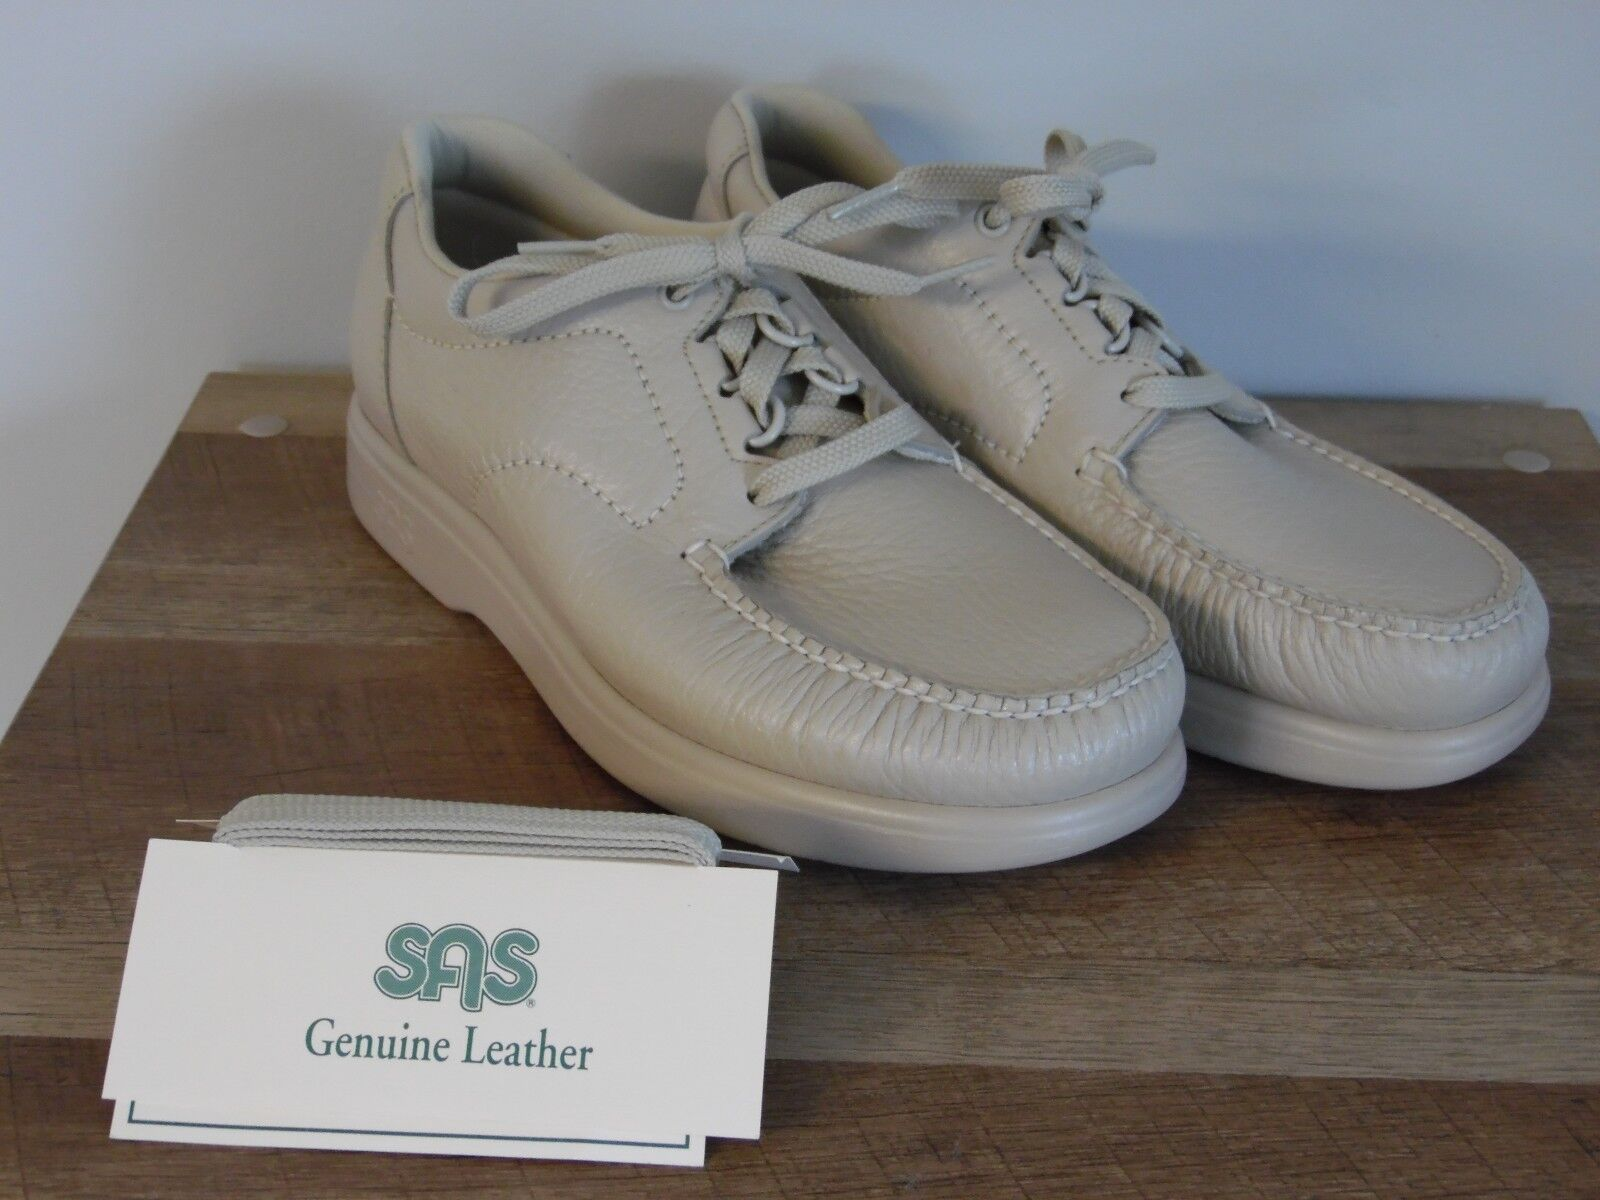 Mens SAS shoes Tumbled leather tan beige m Width Size 8.5 M Comfort USA Made